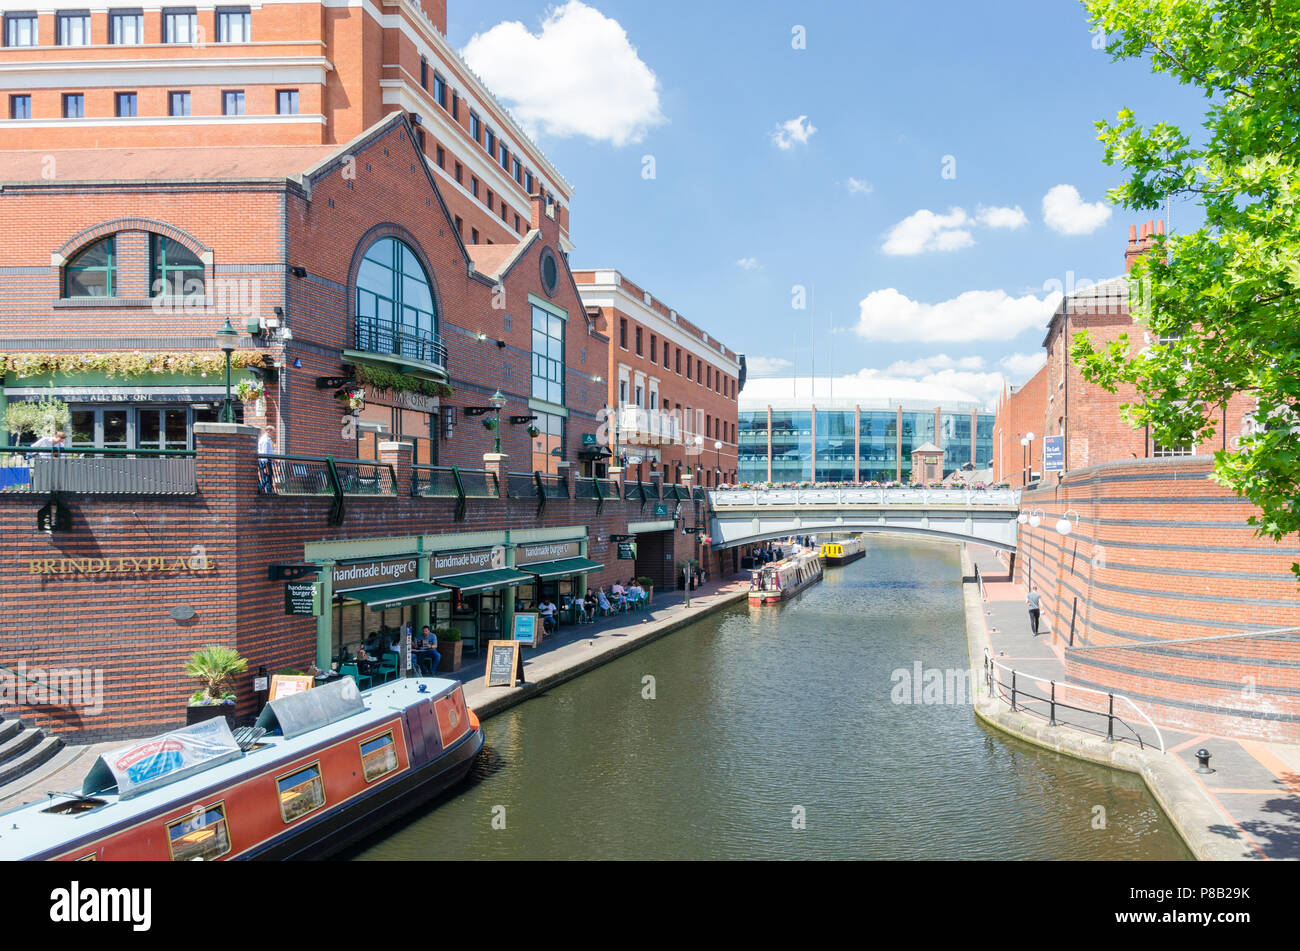 Canal running through Brindley Place in Birmingham City centre on a warm summer day - Stock Image